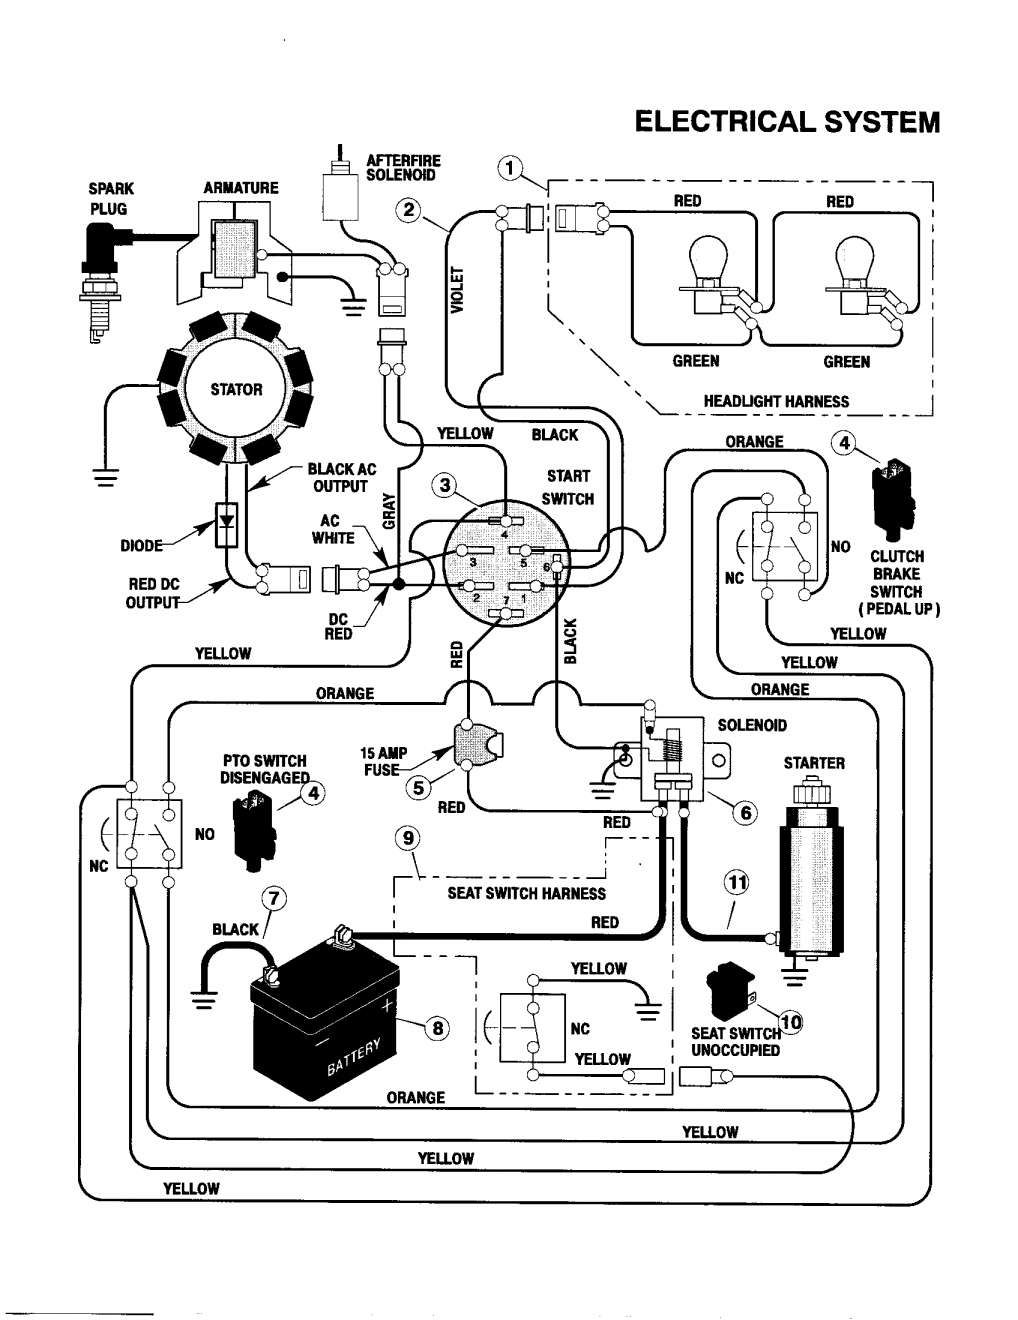 10 Small Engine Starter Switch Wiring Diagram Engine Diagram Wiringg Net Craftsman Riding Lawn Mower Lawn Tractor Riding Lawn Mowers